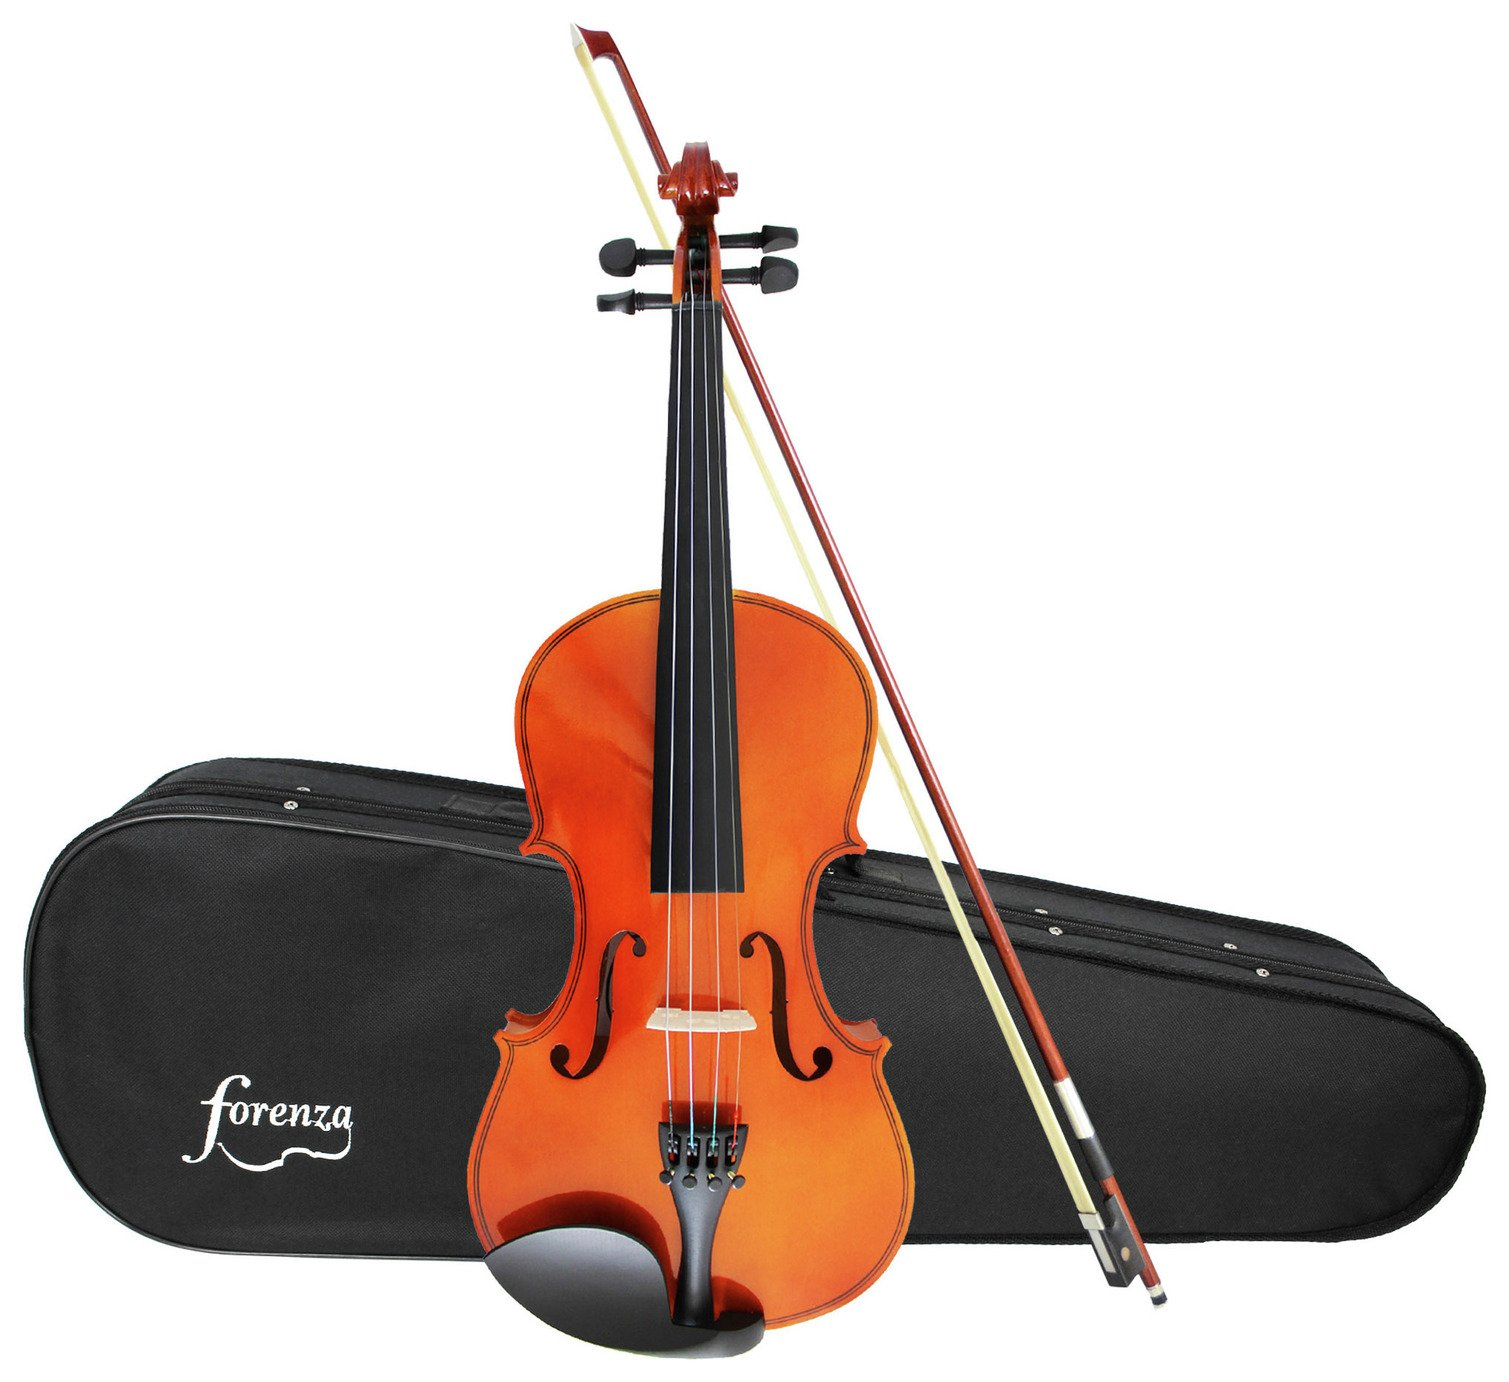 Image of Forenza Uno Series 4/4 Violin Outfit.